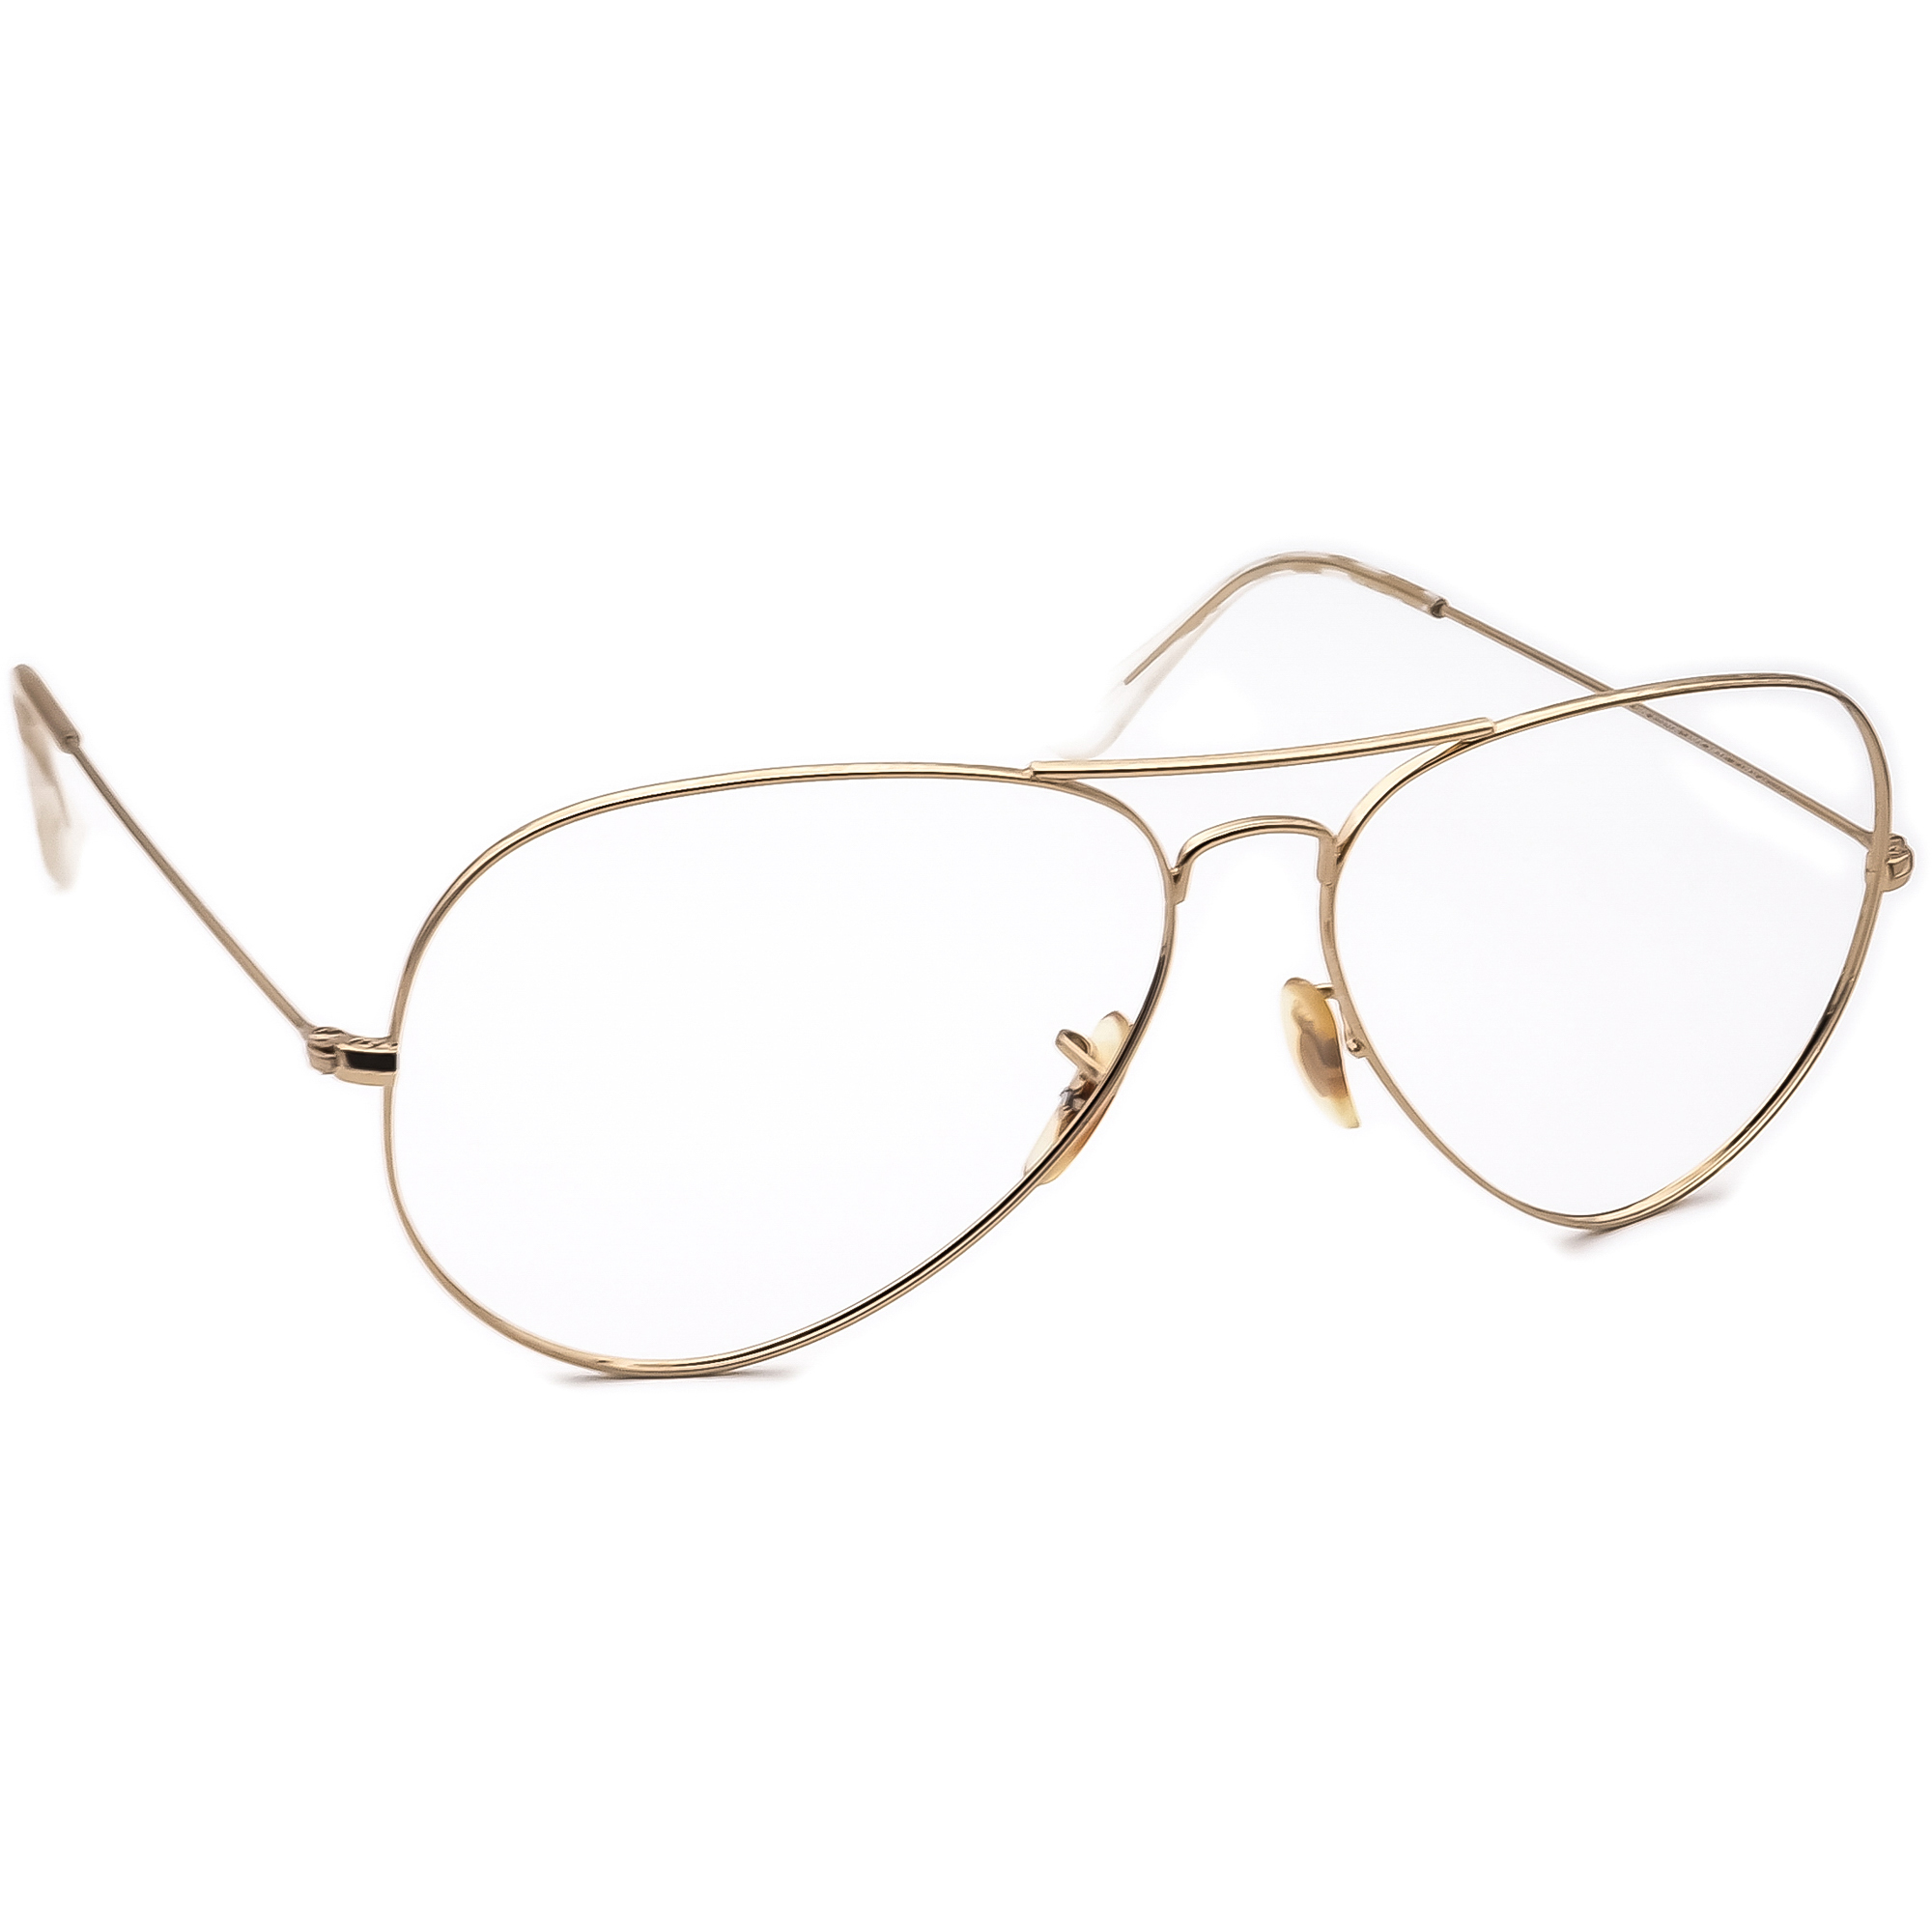 Ray-Ban RB 3026 Large Metal II L2846 Eyeglasses